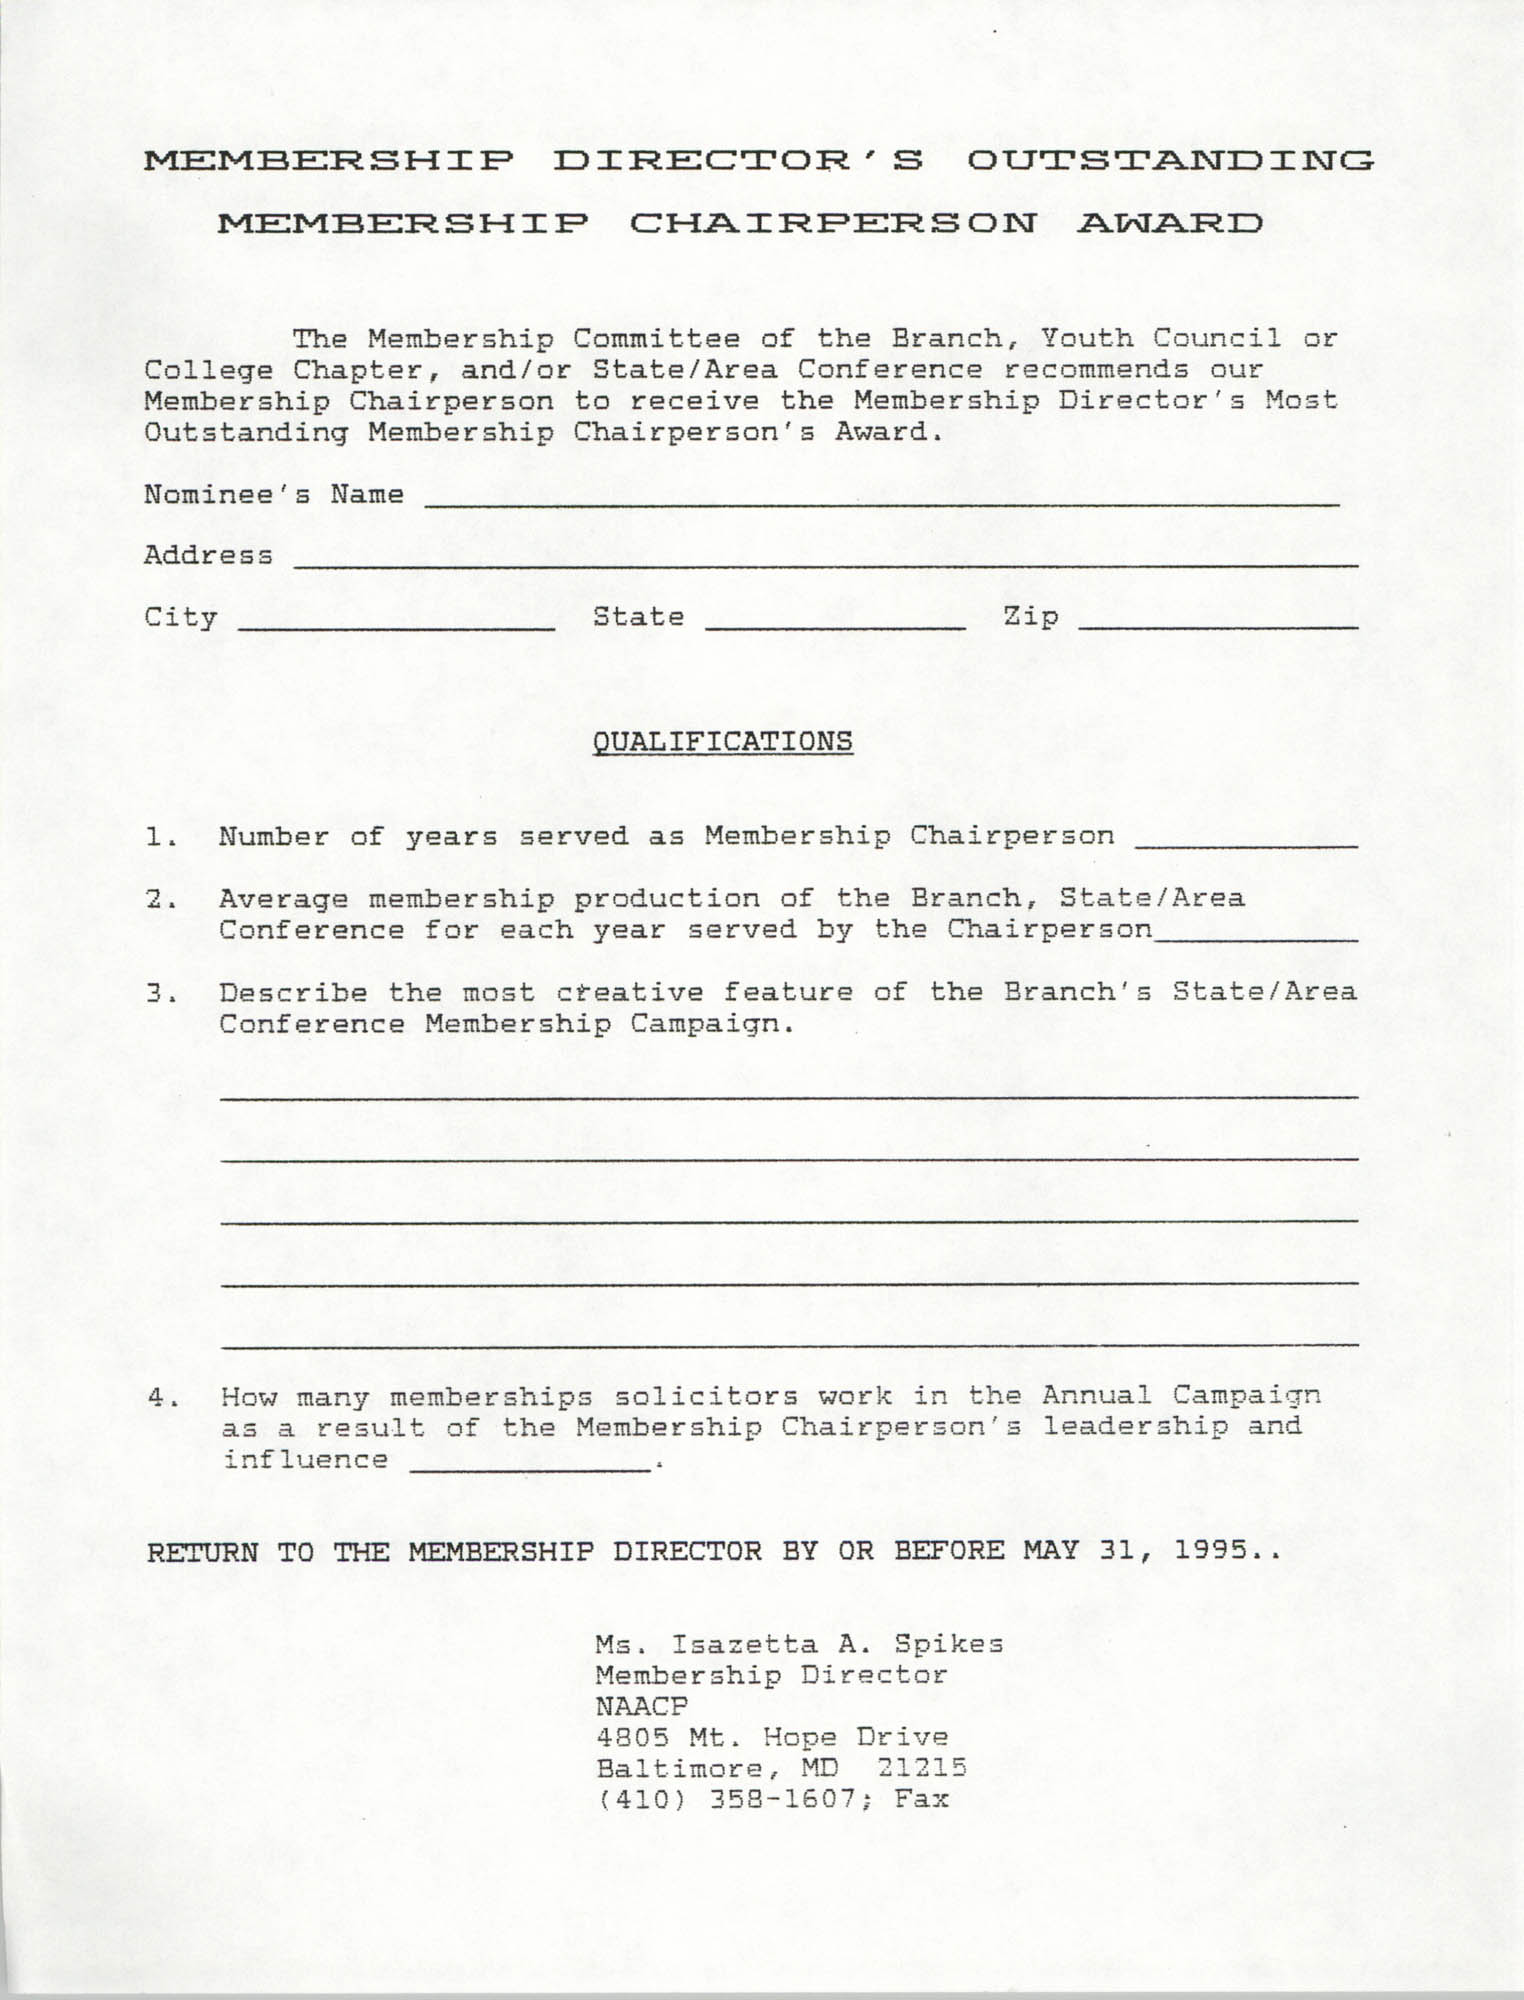 NAACP Membership Director's Outstanding Membership Chairperson Award  Form